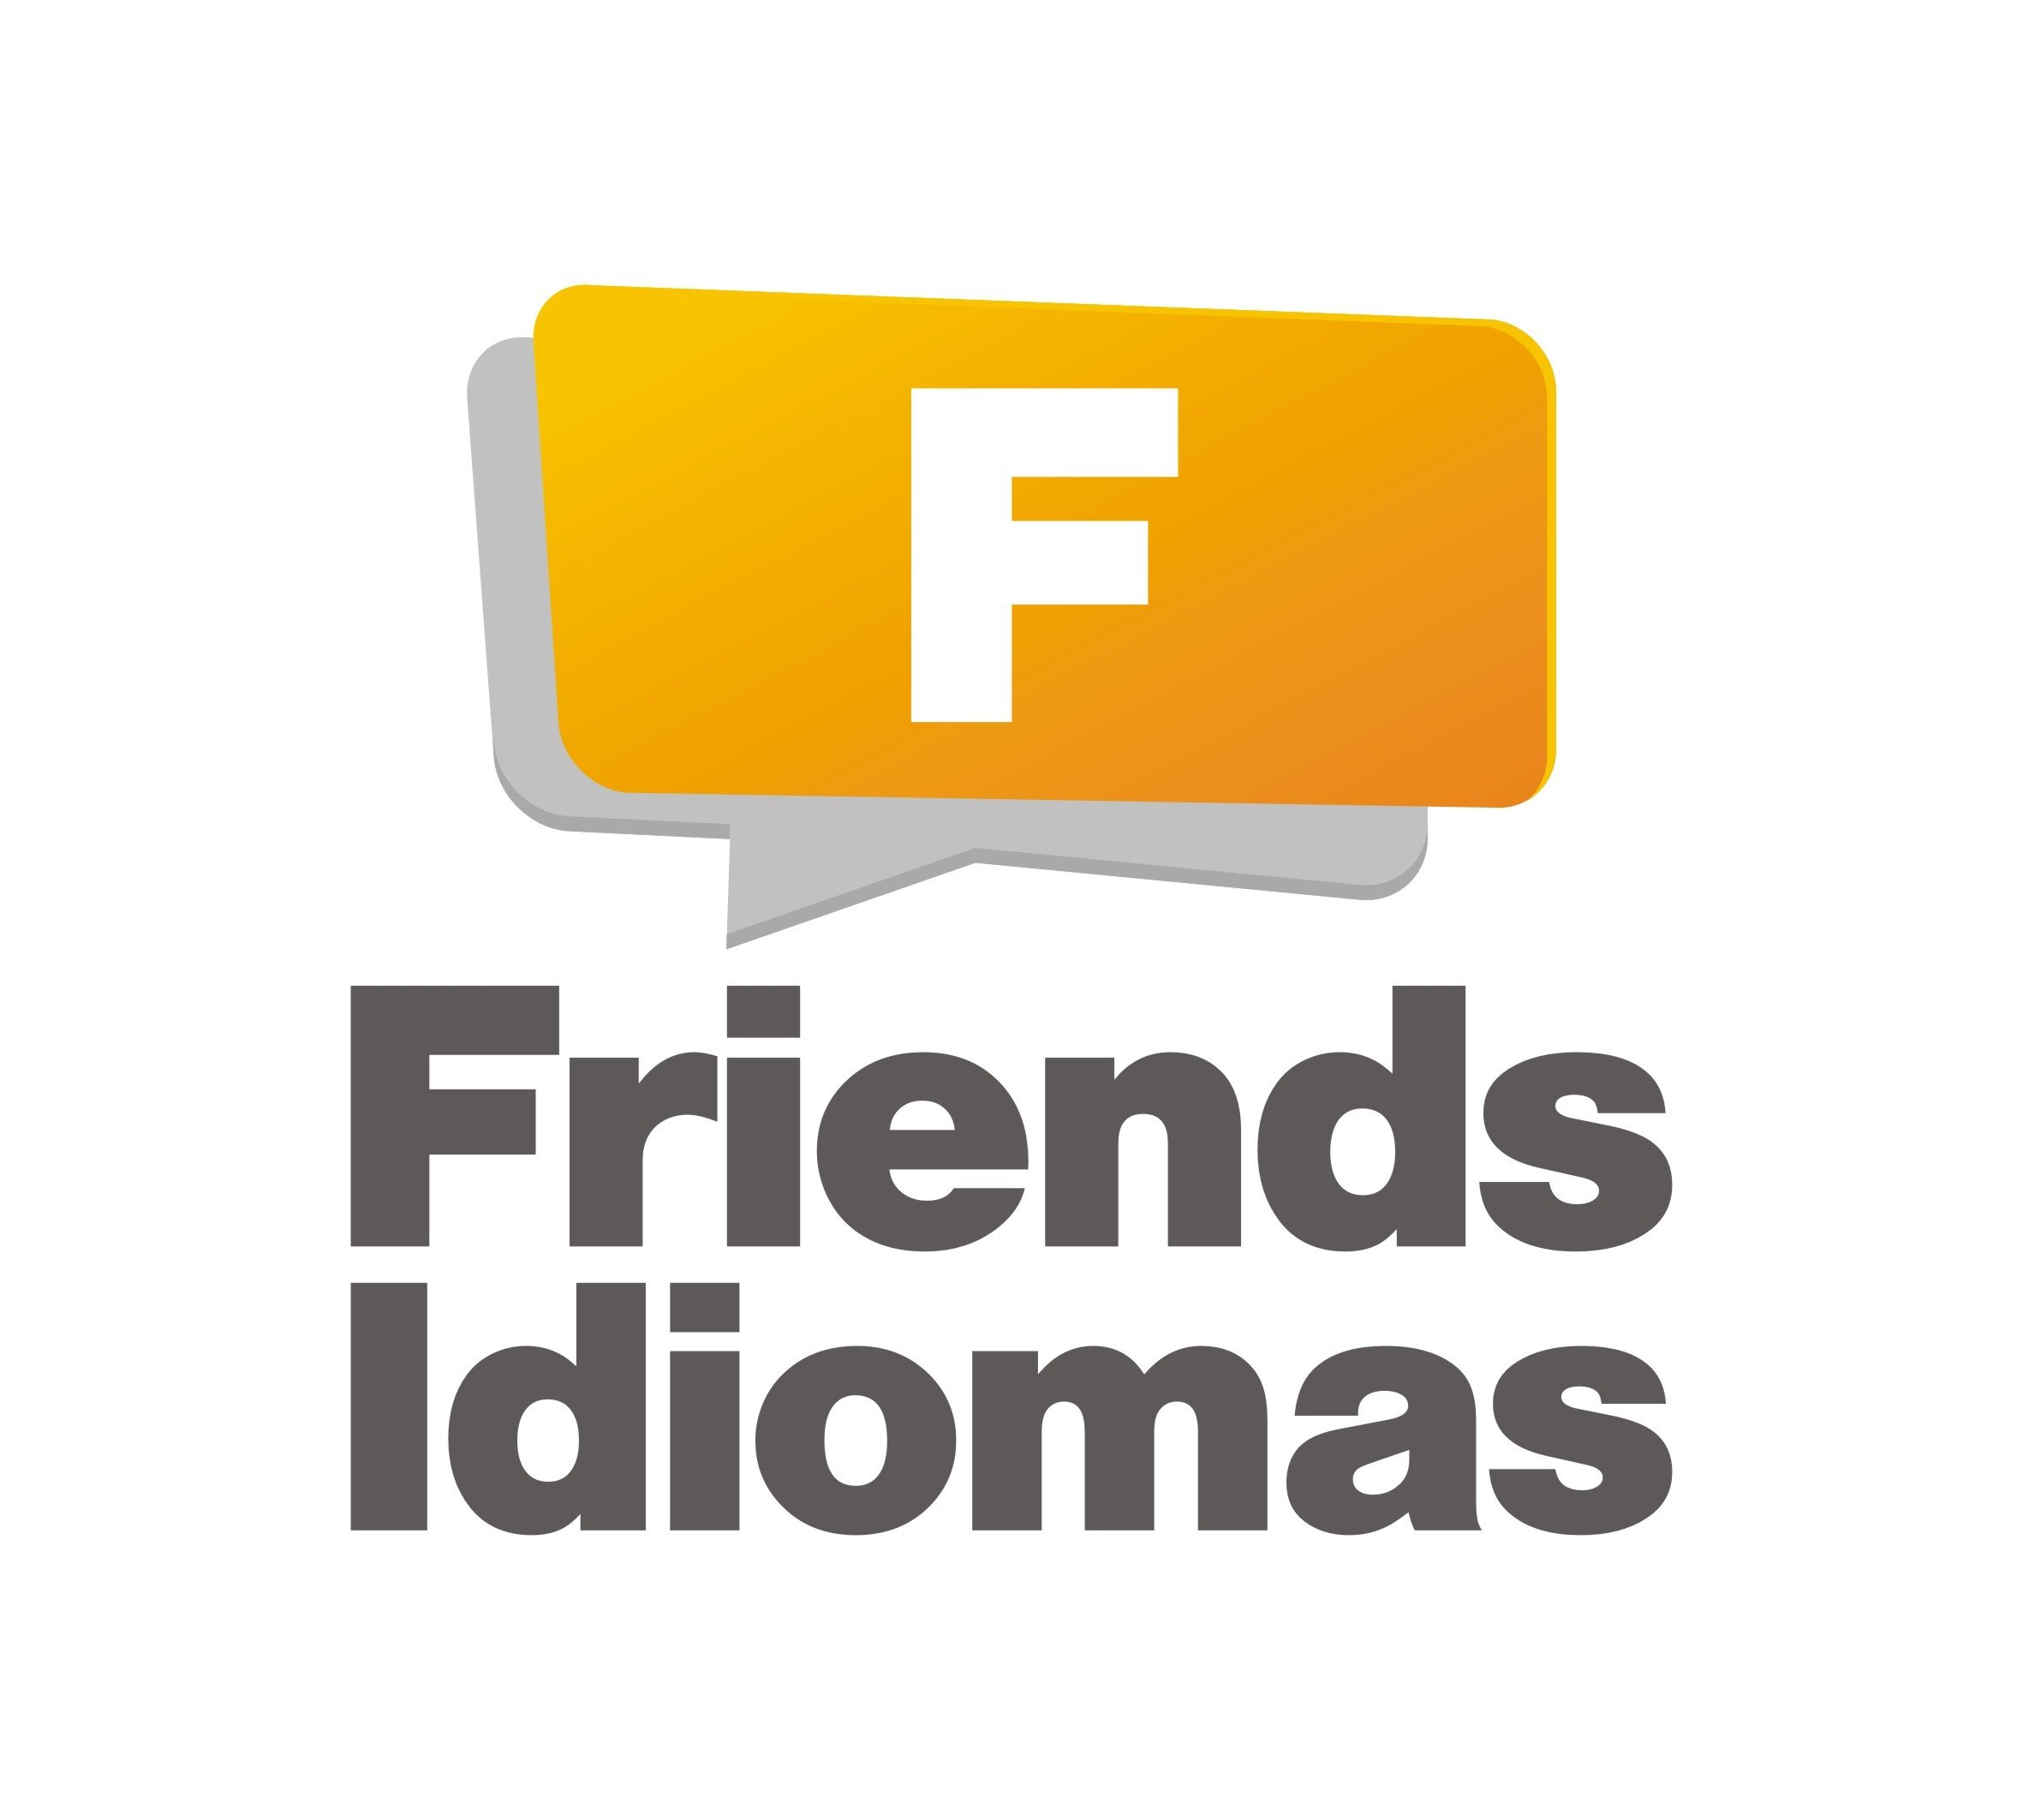 https://0201.nccdn.net/4_2/000/000/019/c2c/FRIENDS-IDIOMAS-LOGOMARCA-2362x2125.jpg